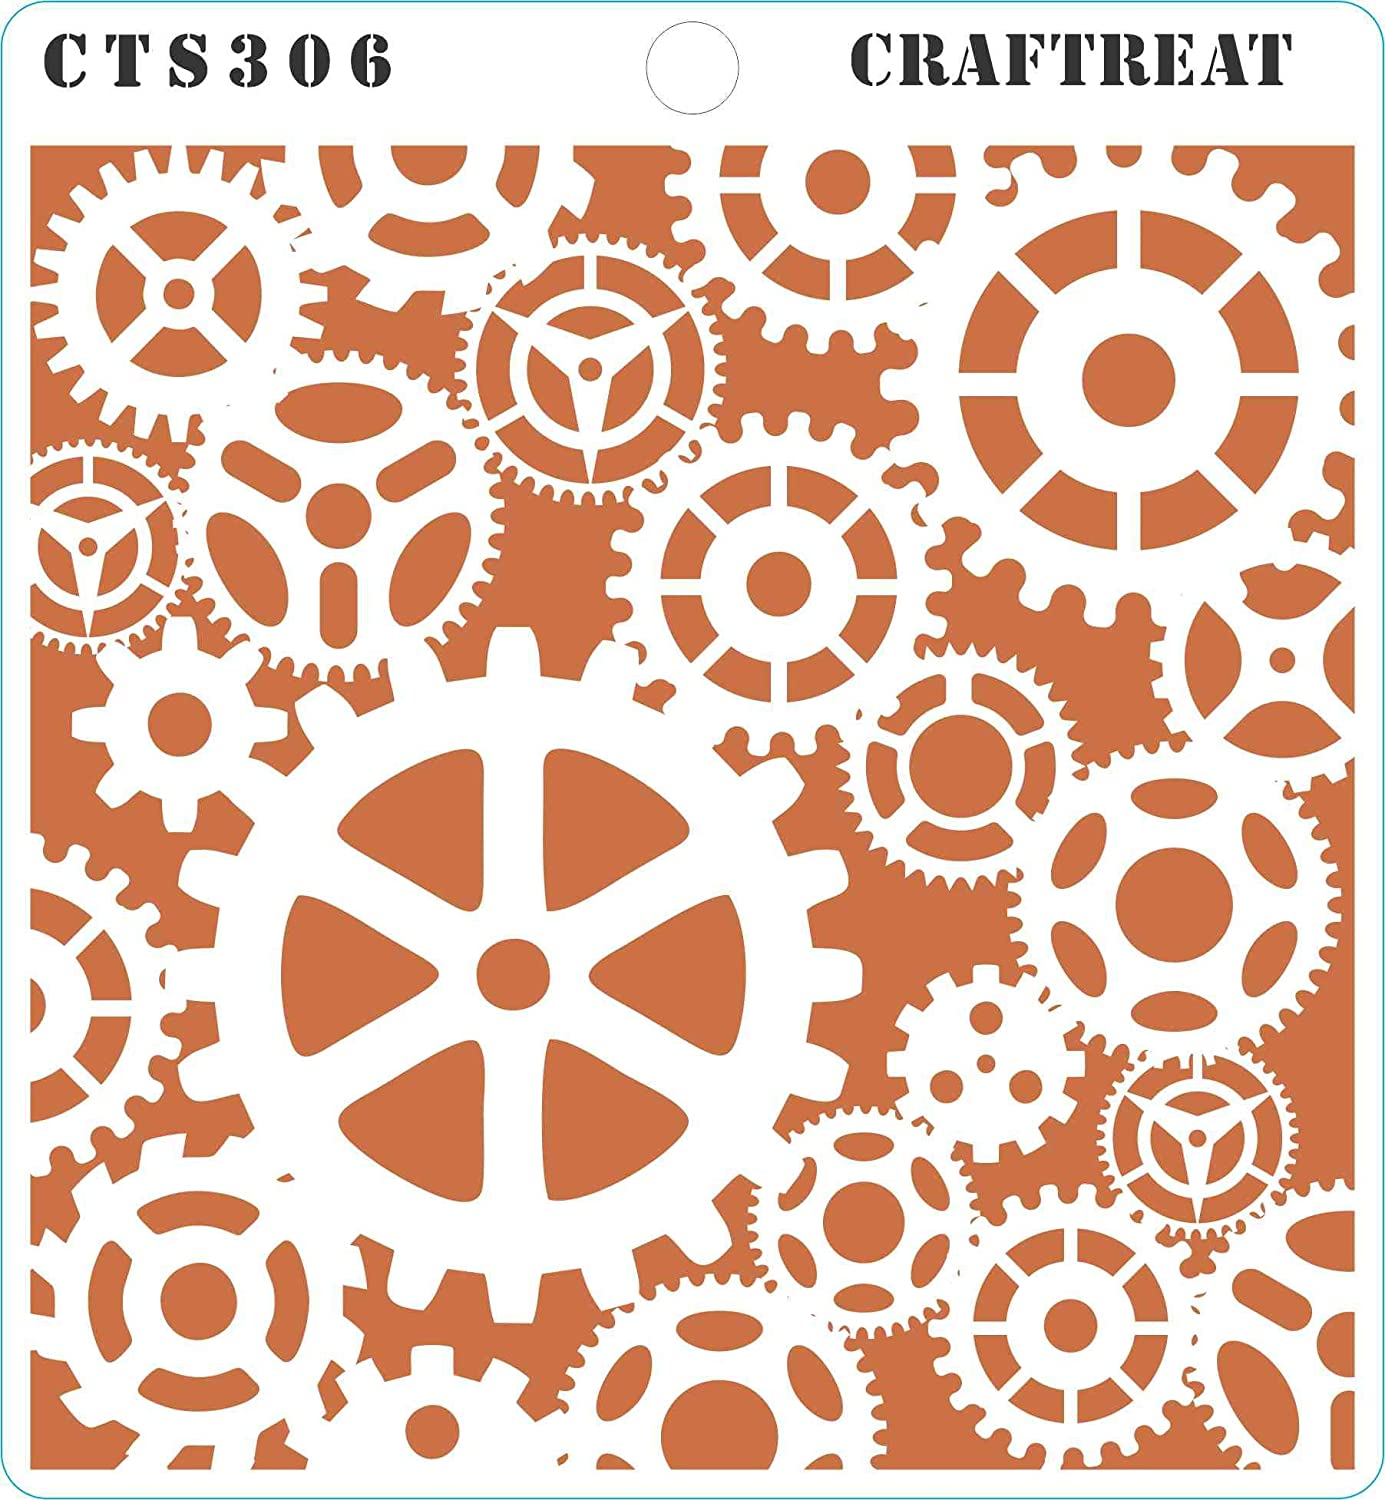 Grunge /& Newsprint Postal Wall Tile 4 pcs CrafTreat Stencil Fabric Scratches DIY Albums and Printing on Paper | Reusable Painting Template for Home Decor Wood 6X6 Crafting